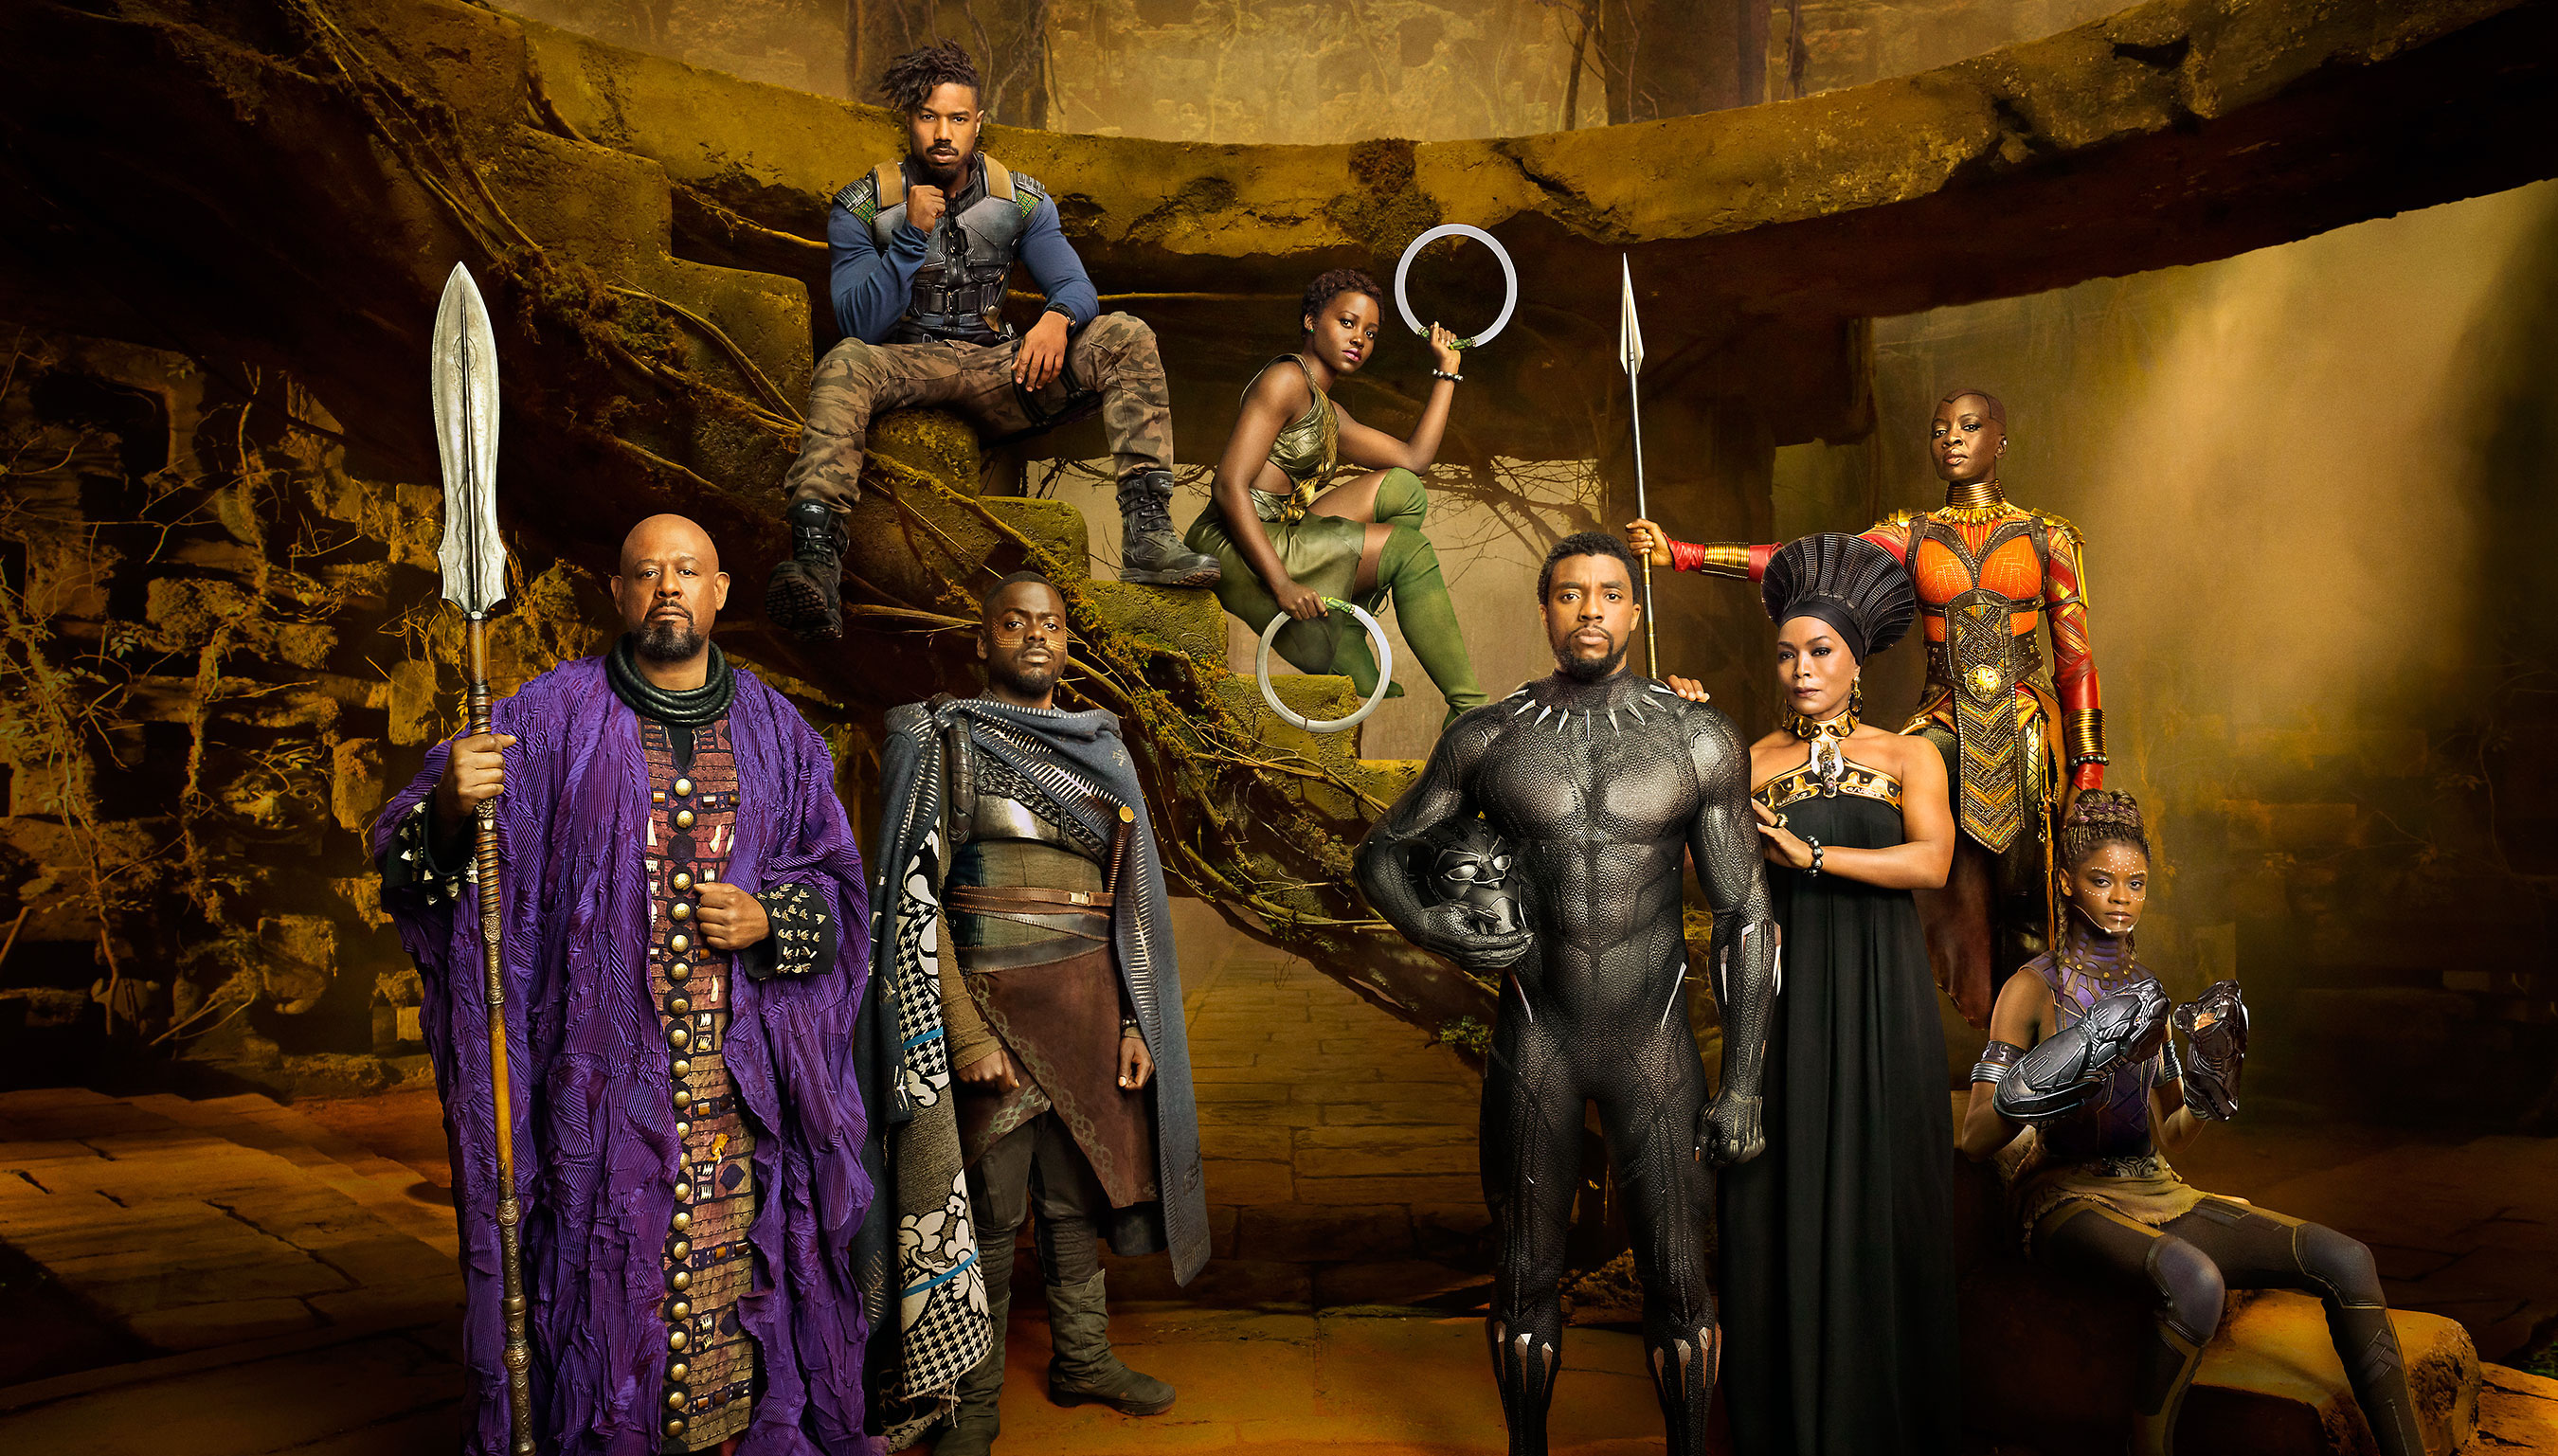 Black Panther Box Office collection: Superhero movie breaks records in debut weekend